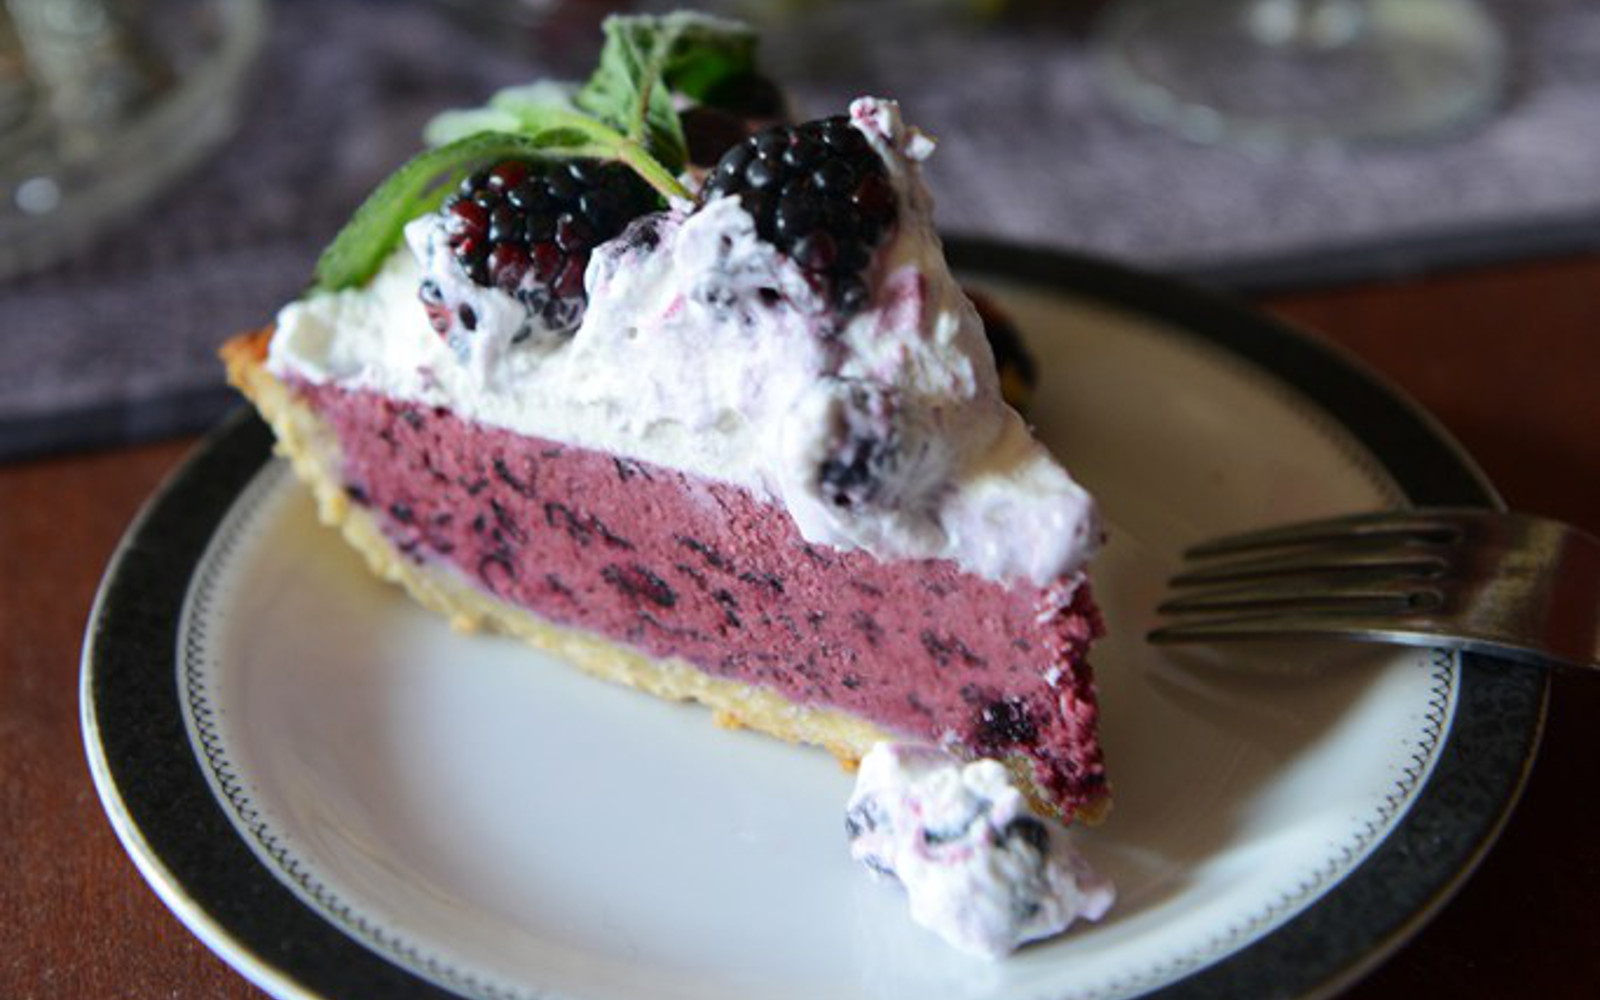 Frozen Blueberry Tart With a Lavender Coconut Crust